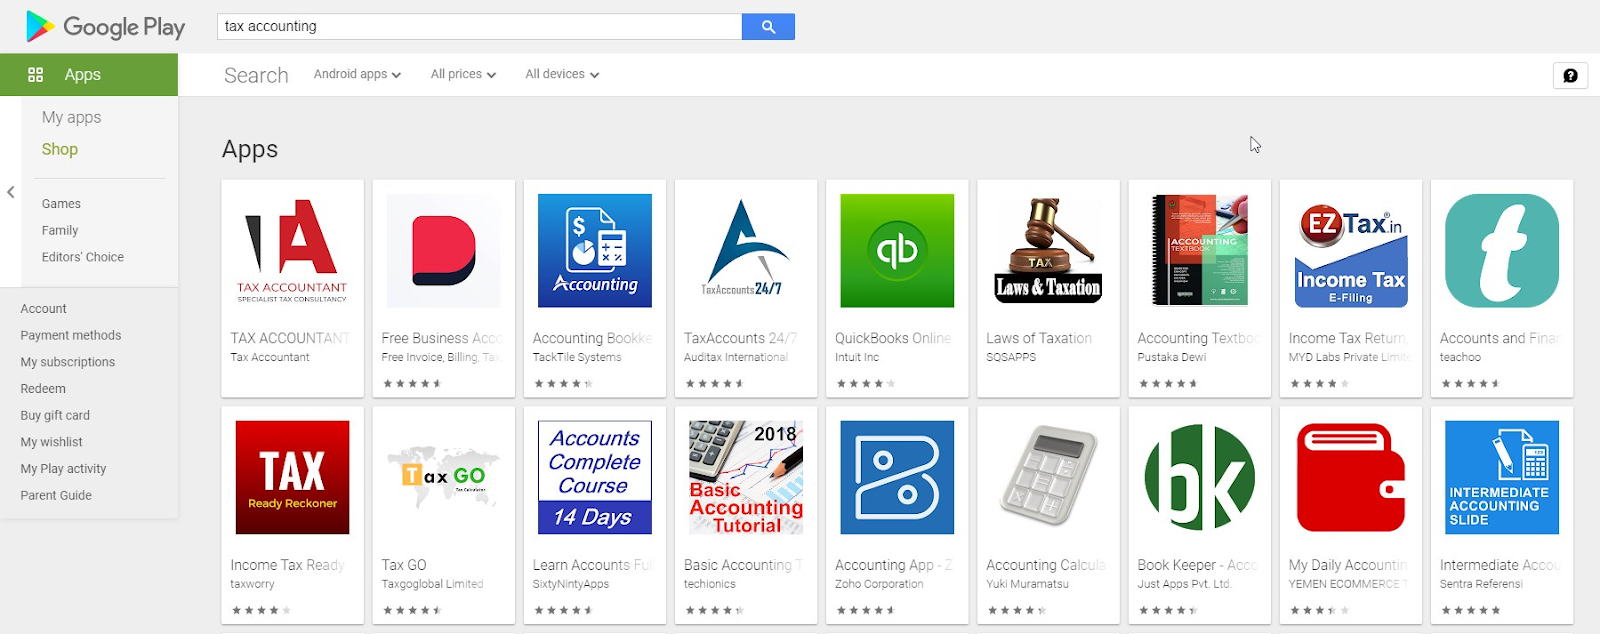 Deskera #1 on the Google Play Store